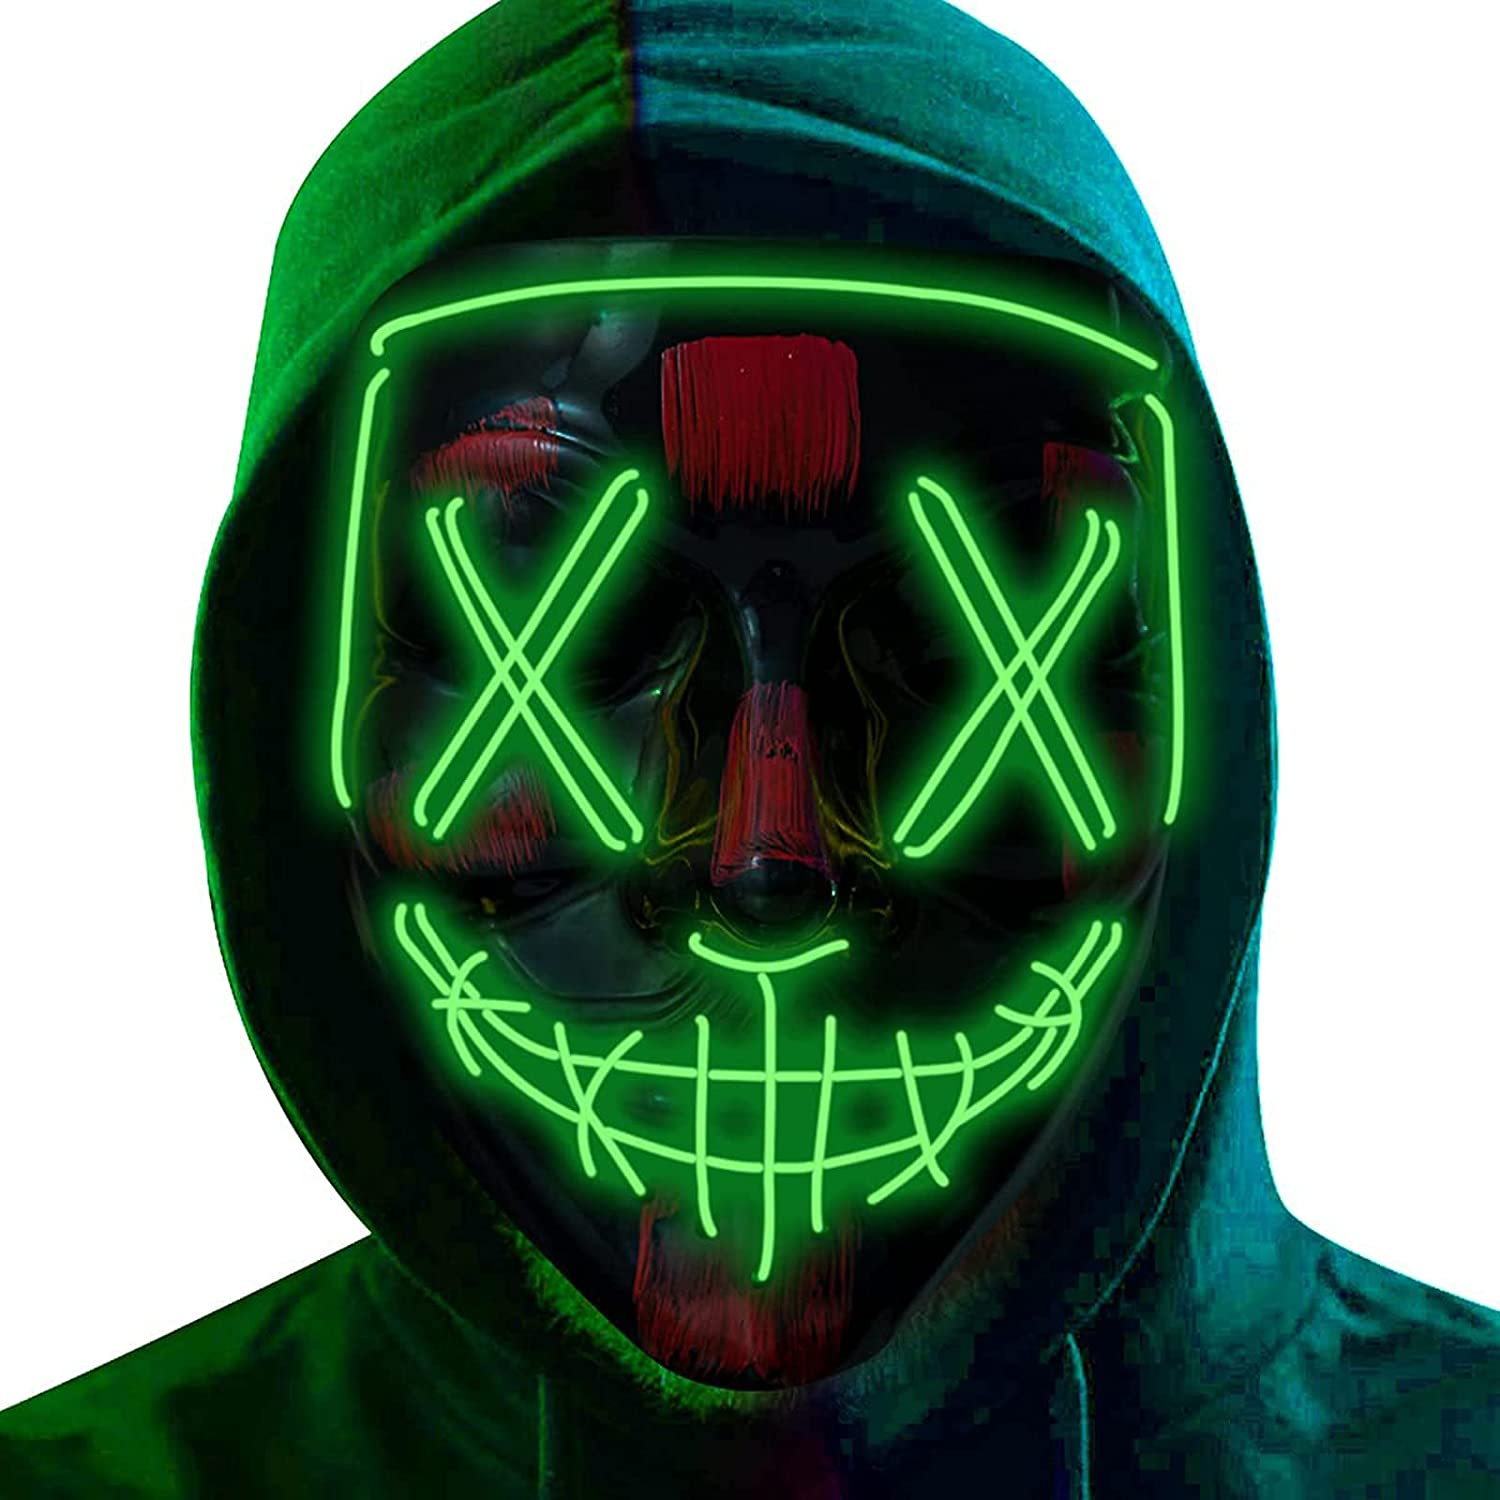 Low price Clearance SALE! Limited time! Halloween Mask Cosplay Purge Light M Up Adjustable LED